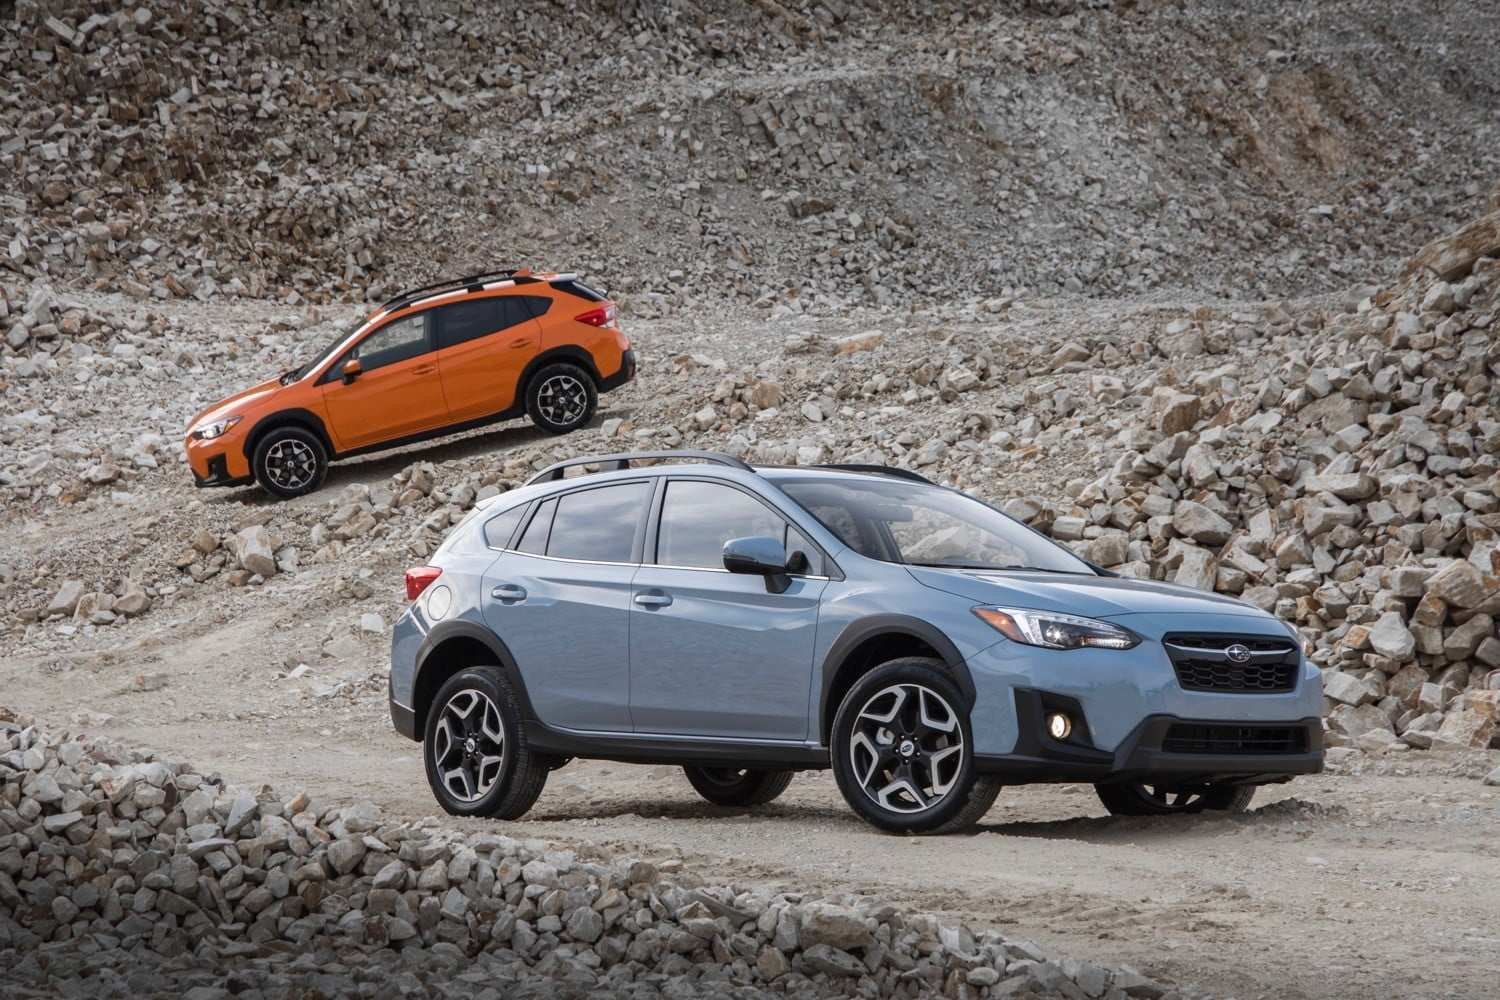 18 Gallery of 2019 Subaru Phev History for 2019 Subaru Phev